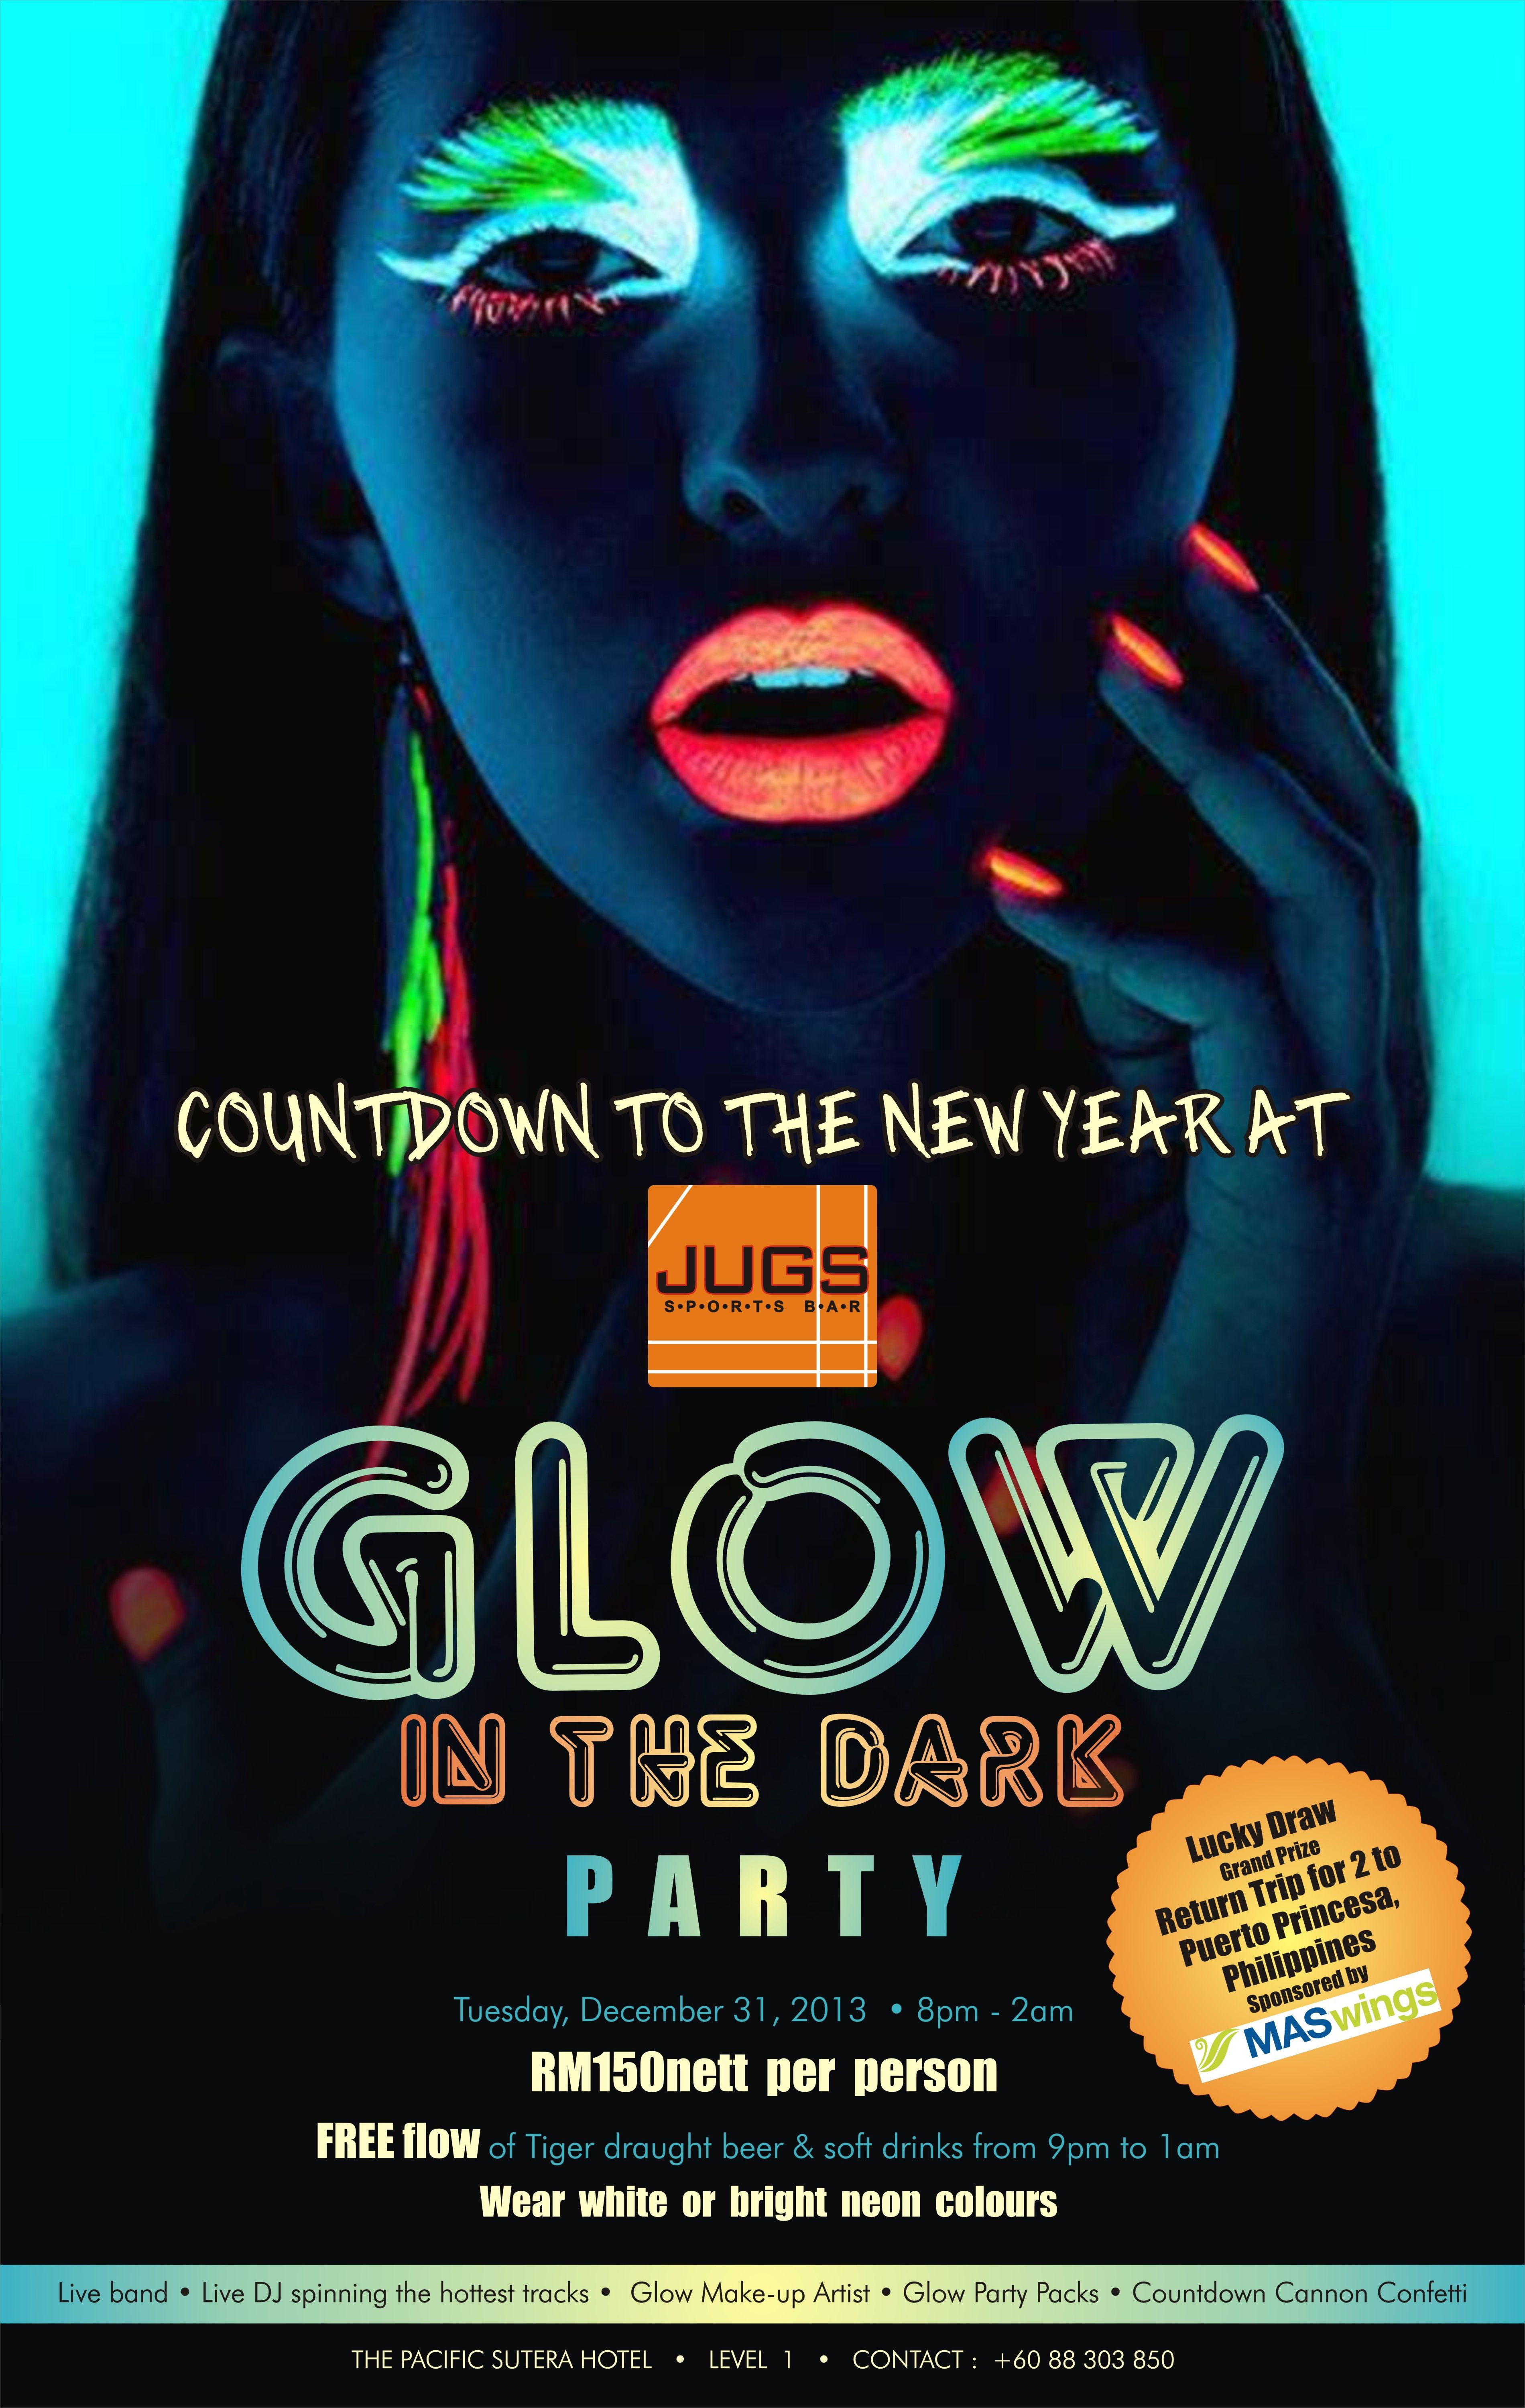 trendinvitationstodaybirthdaypartyinvitationluxuryglowin – Glow in the Dark Party Invitation Ideas